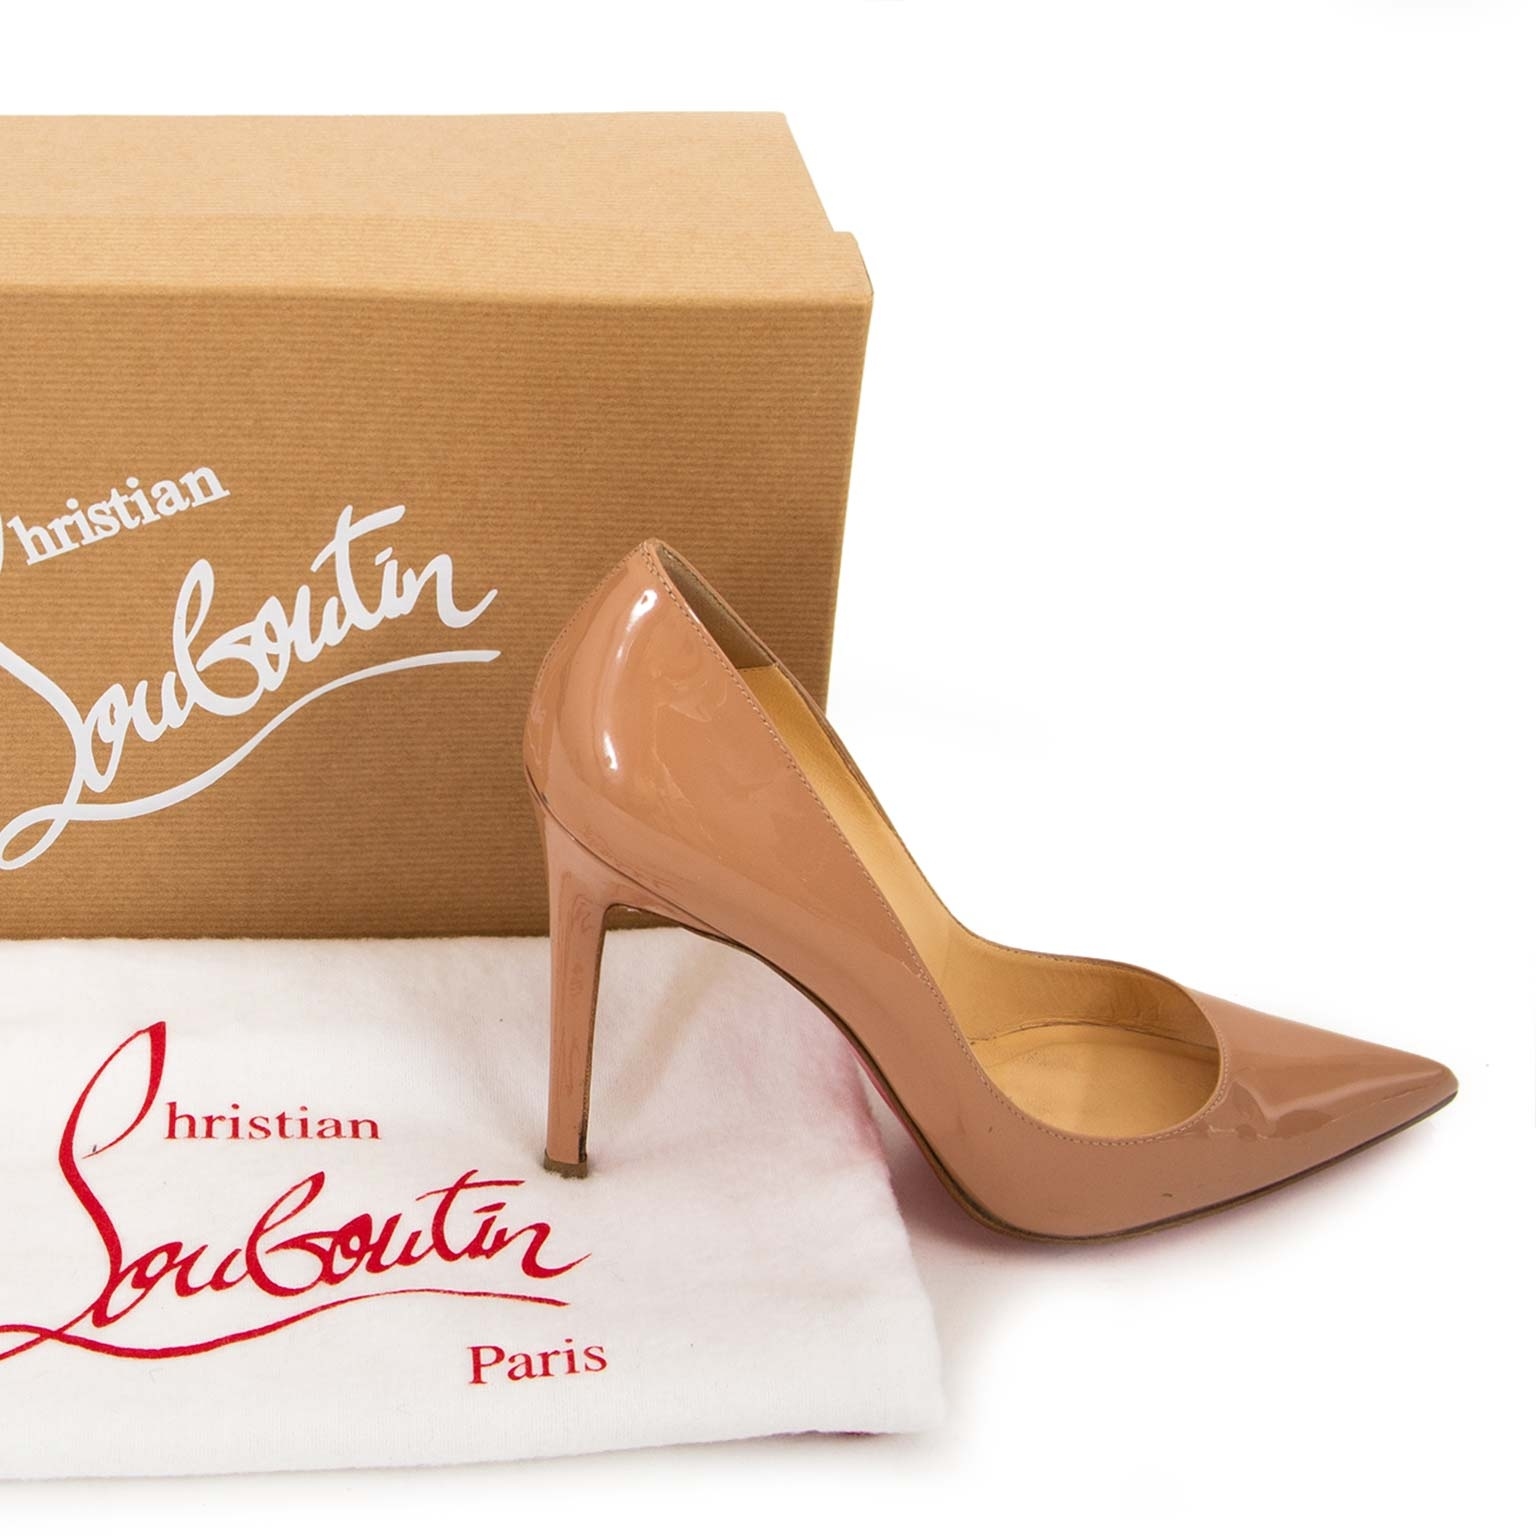 christian louboutin pigalle nude leather pumps now for sale at labellov vintage fashion webshop belgium